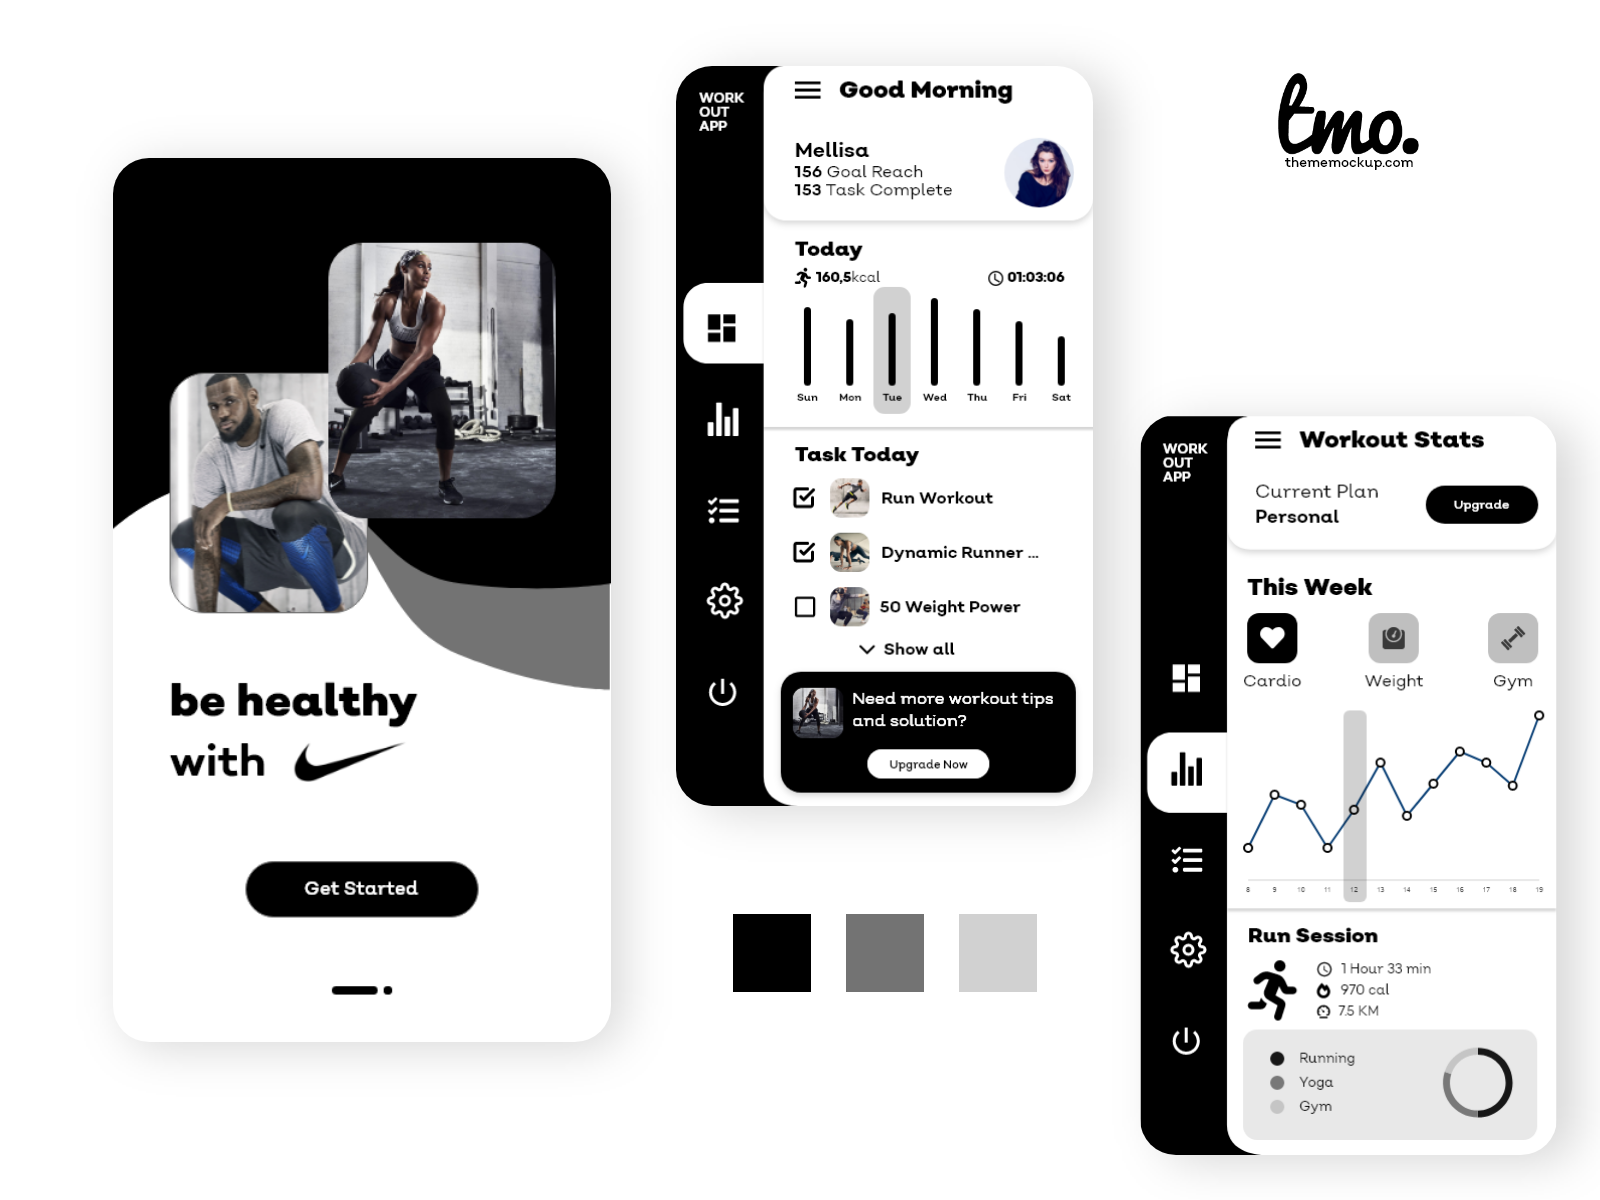 Nike Workout Redesign App Concept cover image